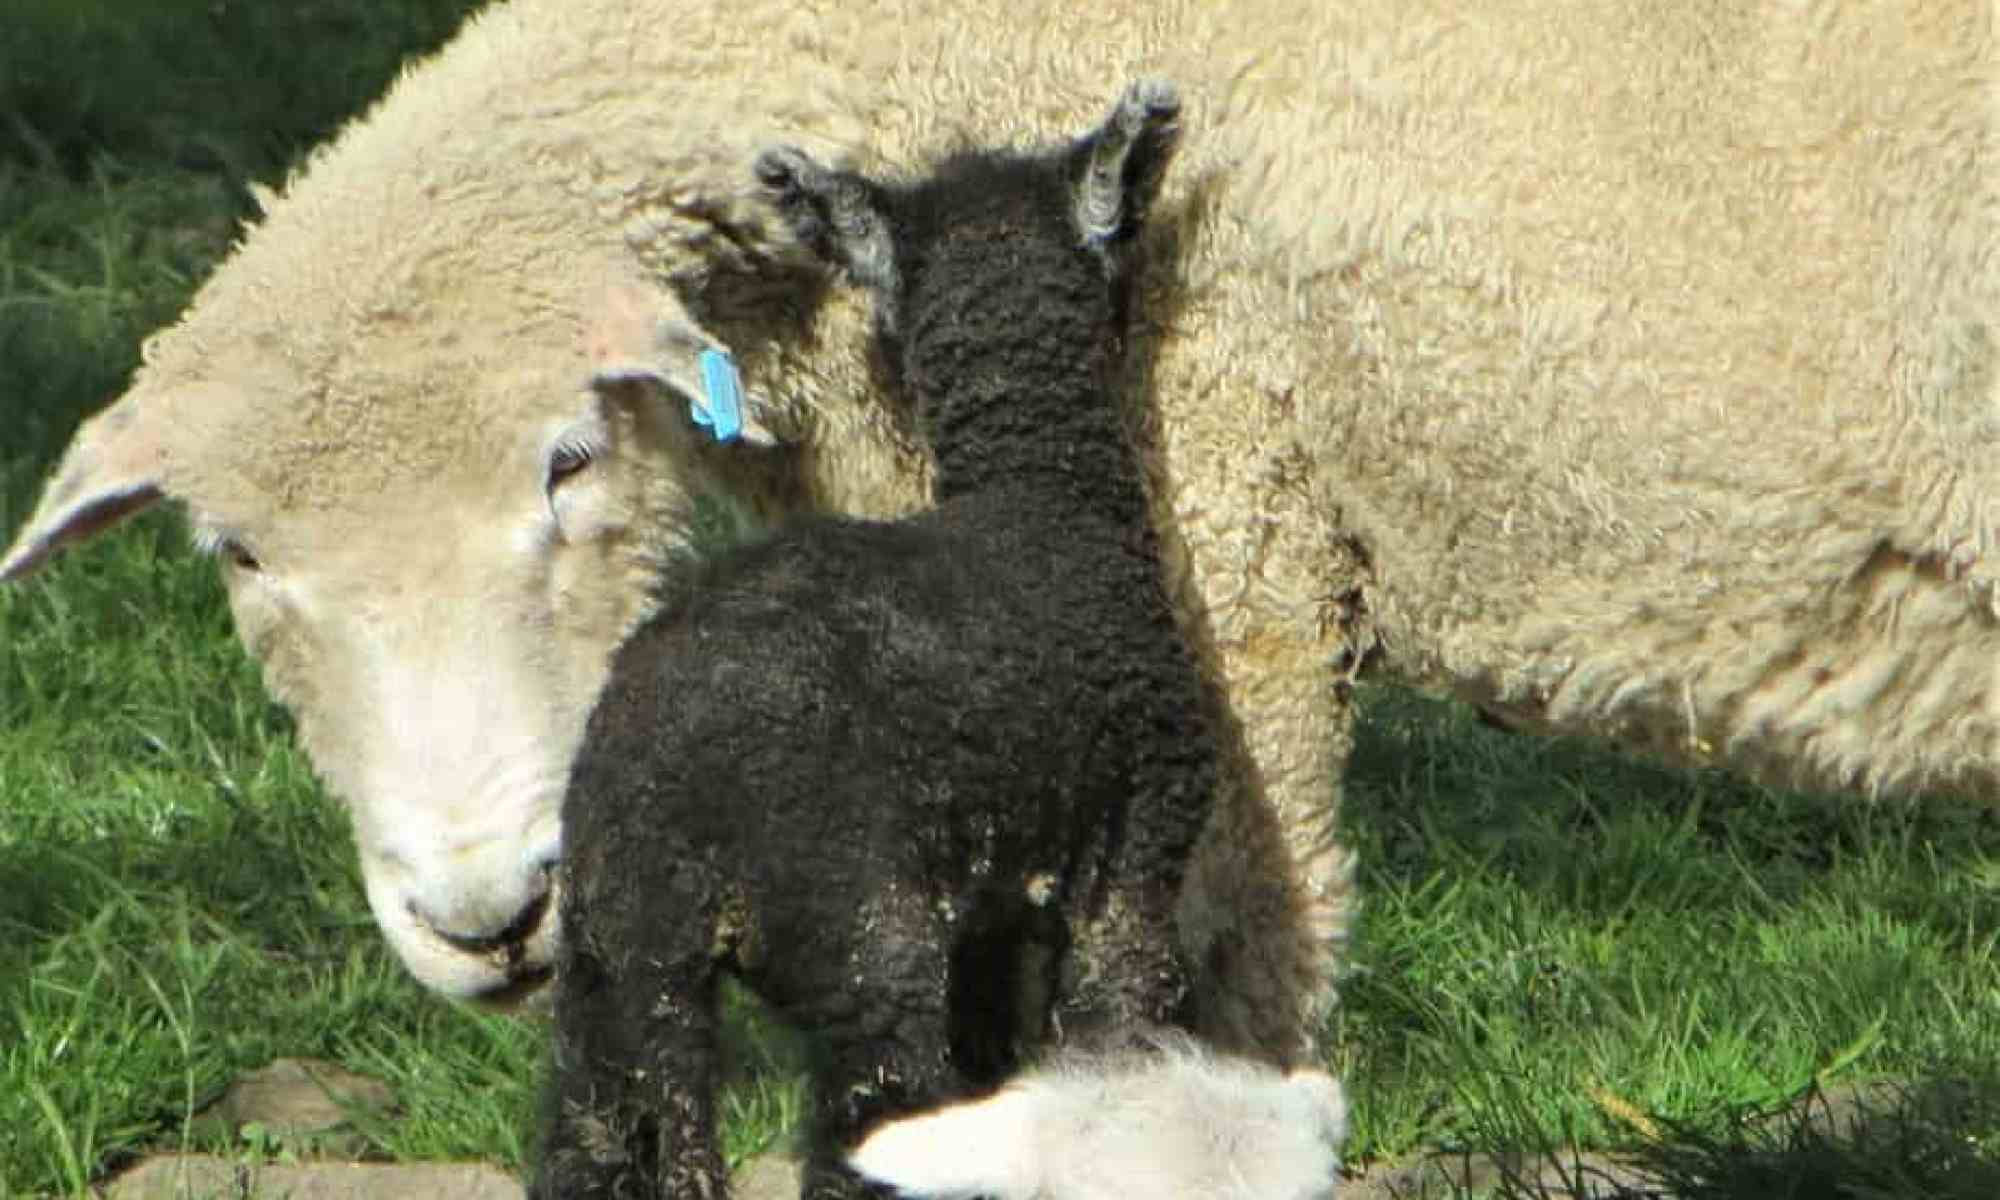 A ewe nuzzles her tiny black lamb at lambing time